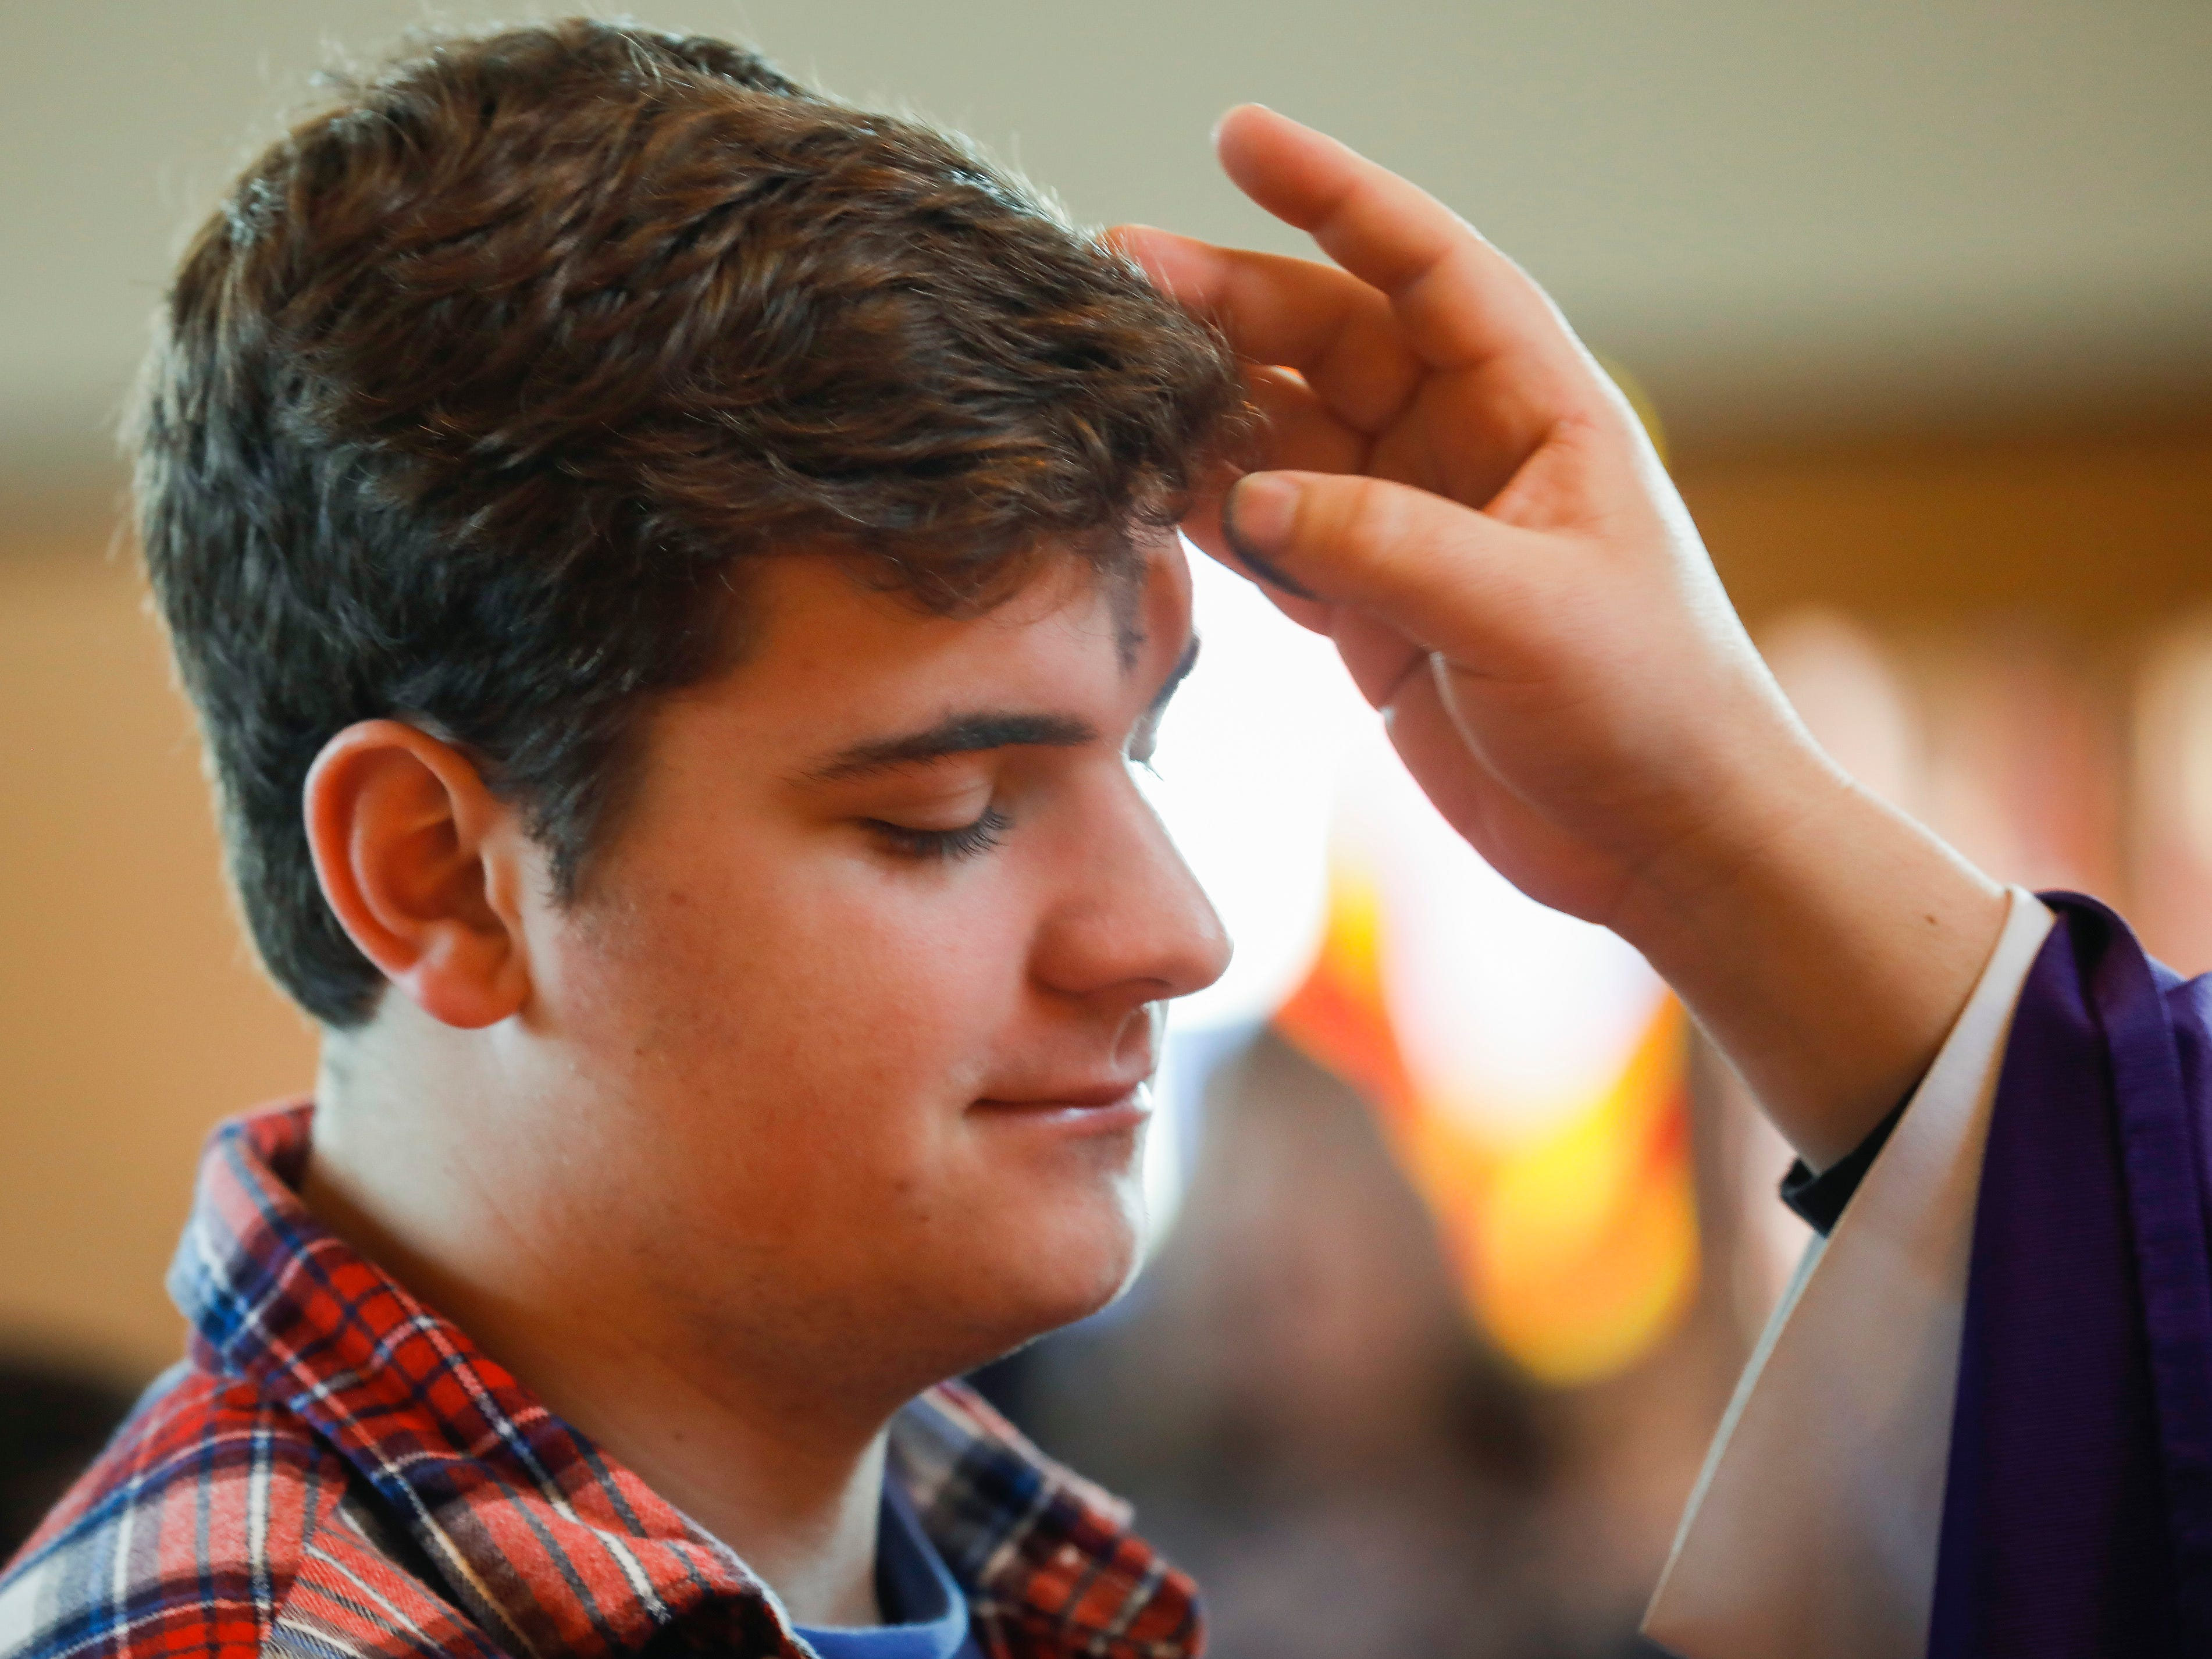 Dominic Masek, a student at Missouri State University, has ashes applied to his forehead during the Ash Wednesday Mass at the Missouri State University Catholic Campus Ministry on Wednesday, March 6, 2019.